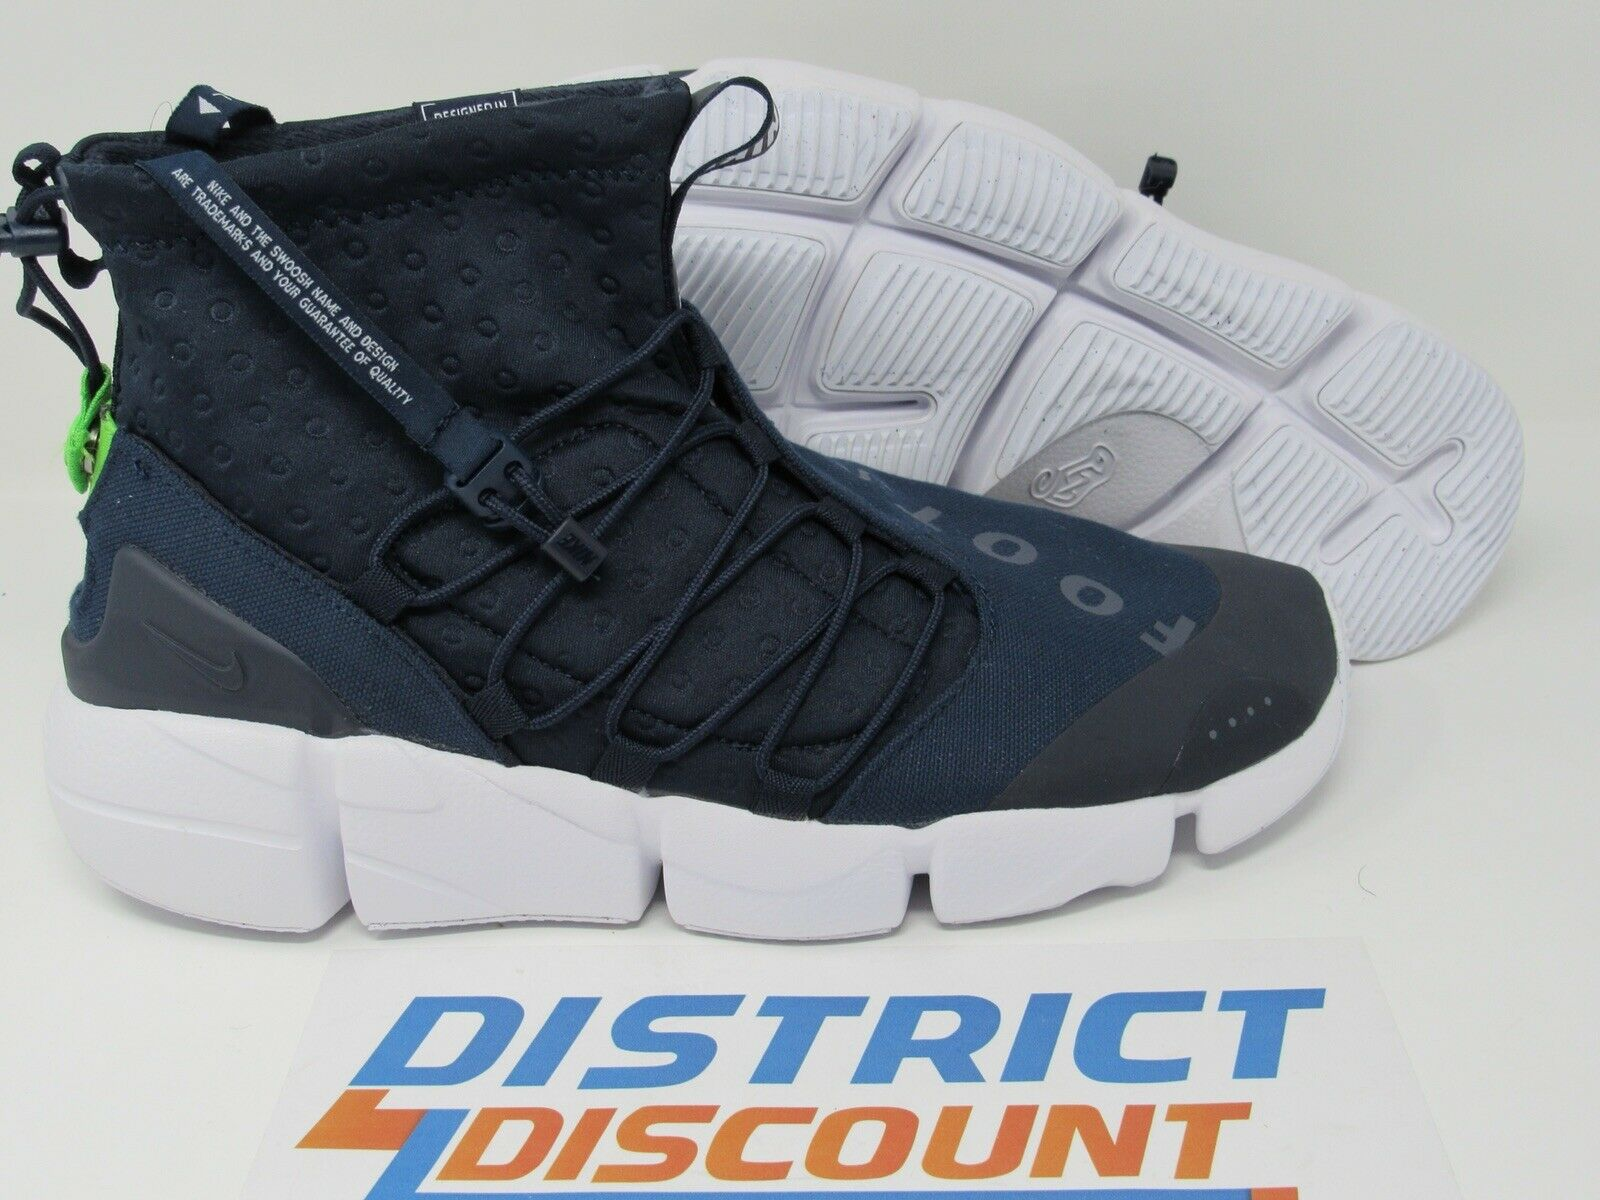 Nike Air Footscape Mid Utility Tokyo Obsidian blueee NSW 924455-400 Men Size 9.5